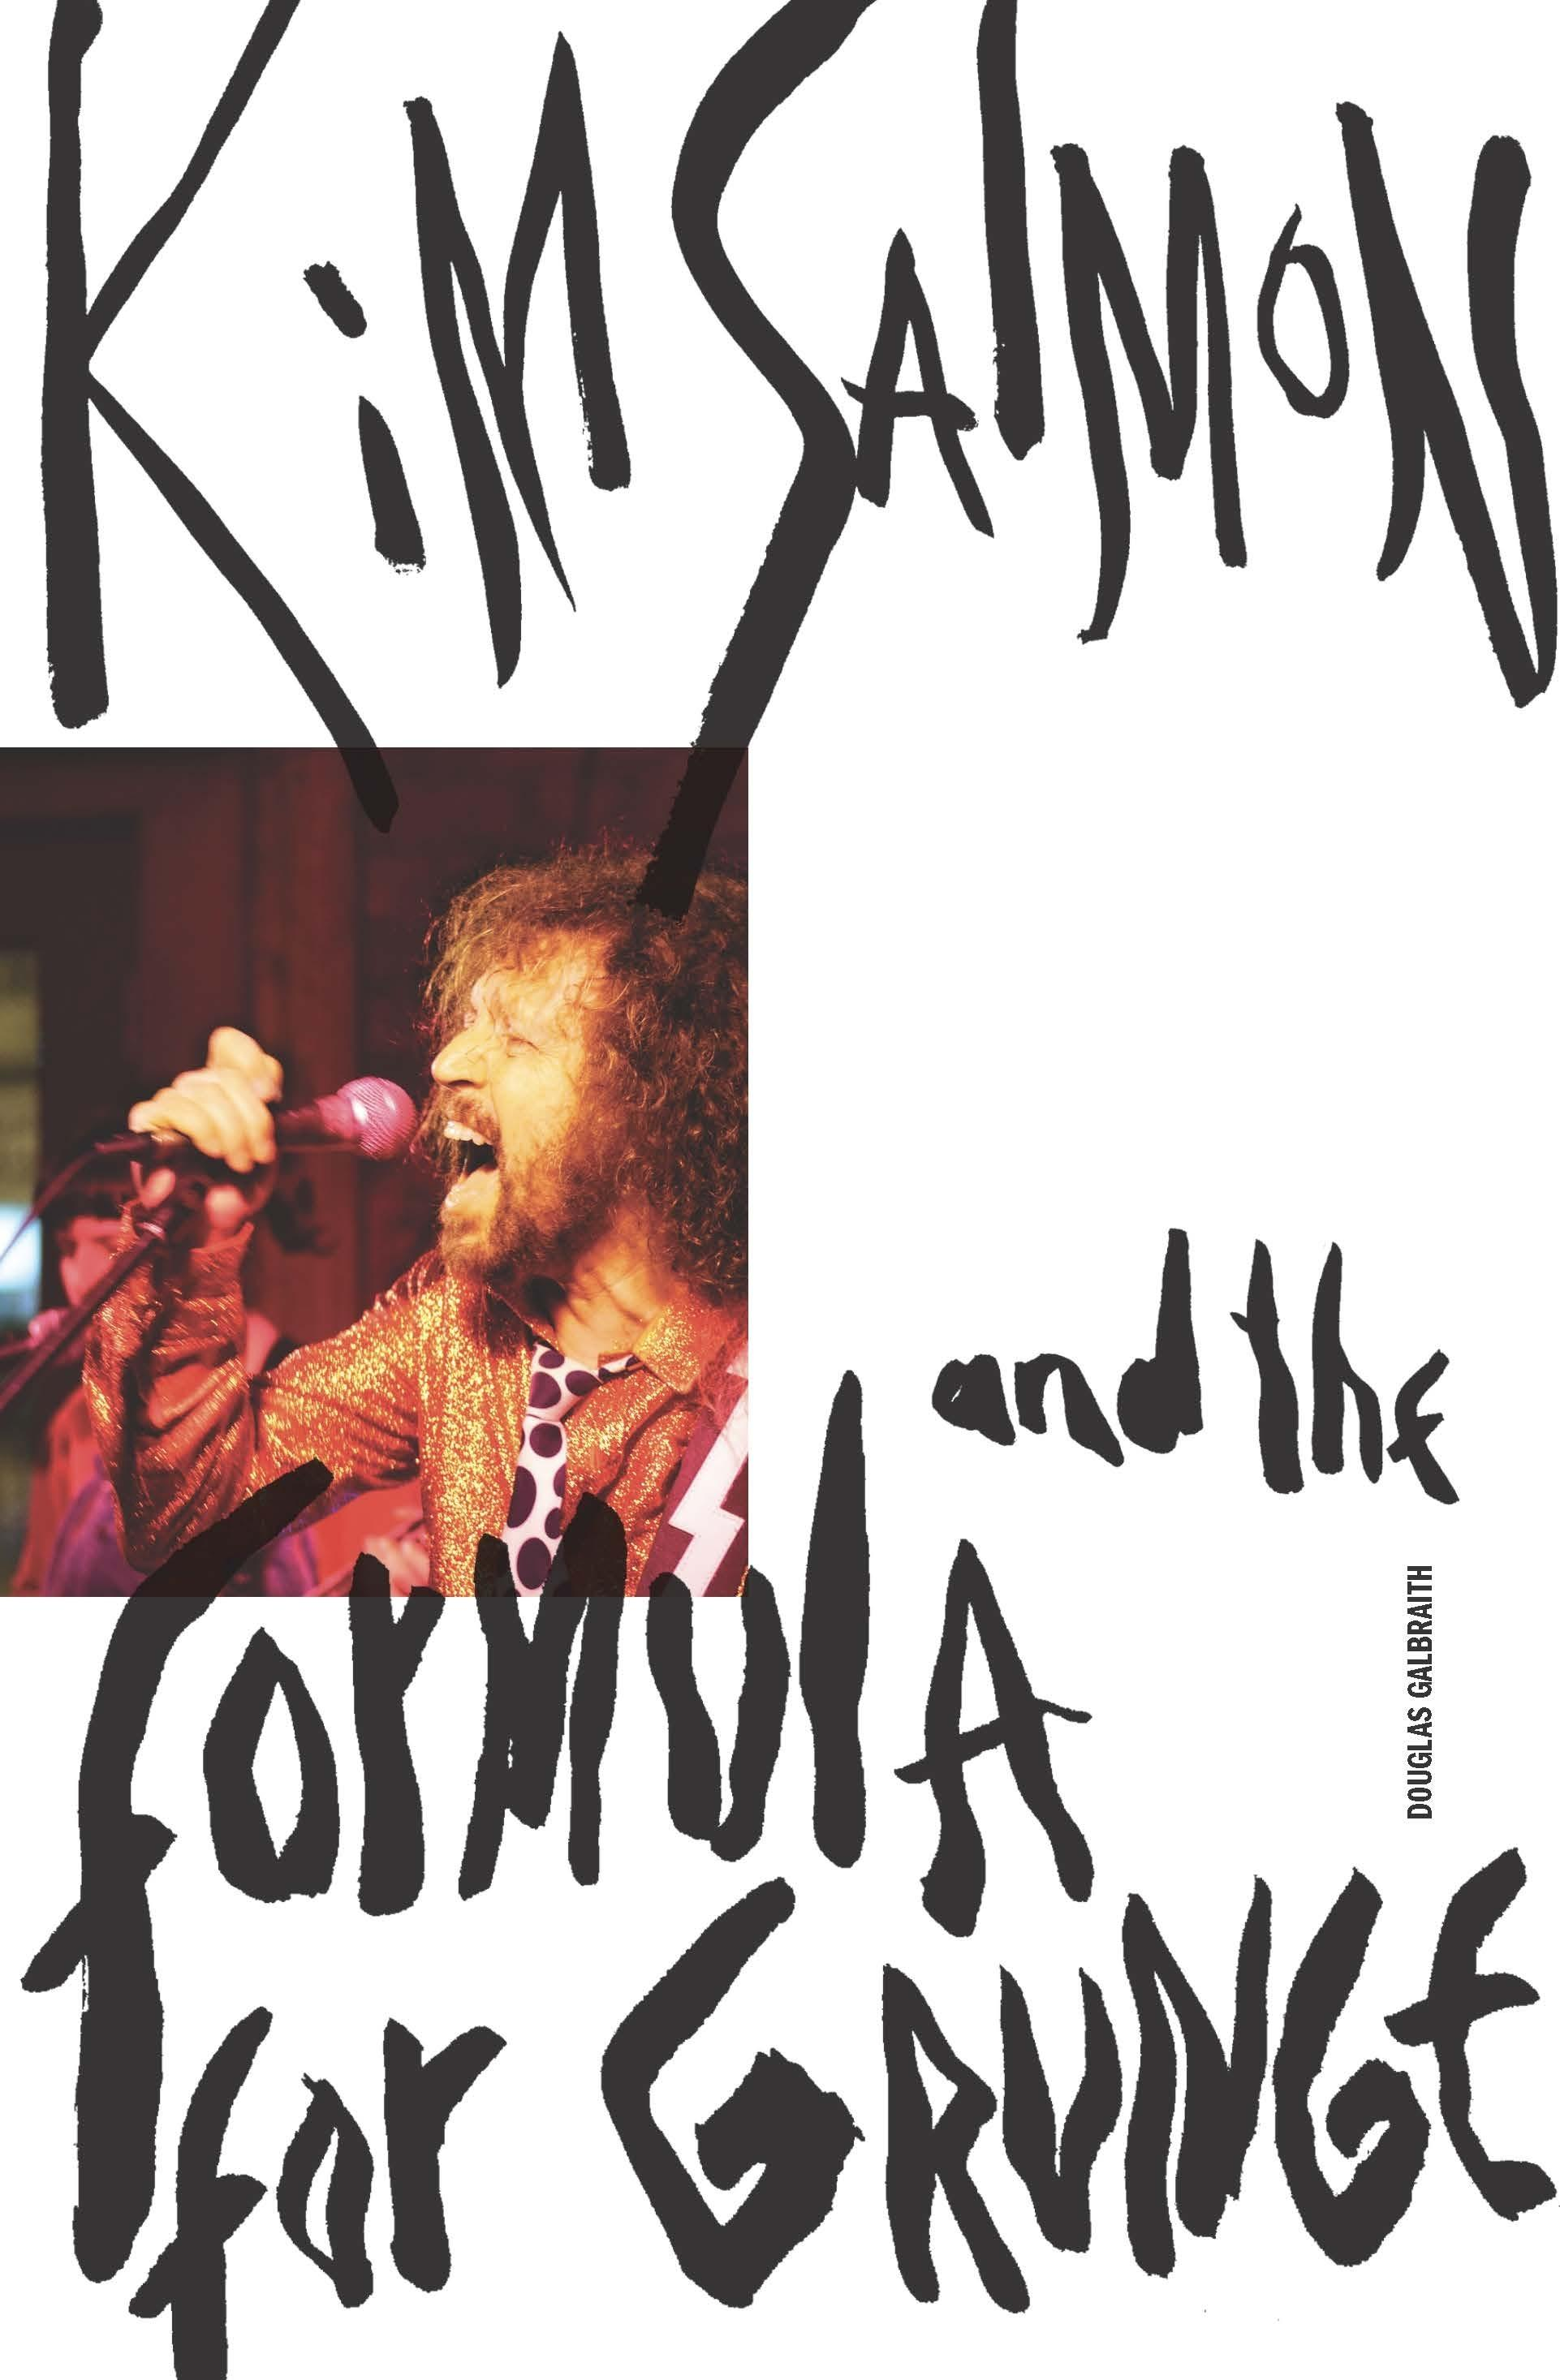 Kim Salmon and the Formula for Grunge, by Douglas Galbraith